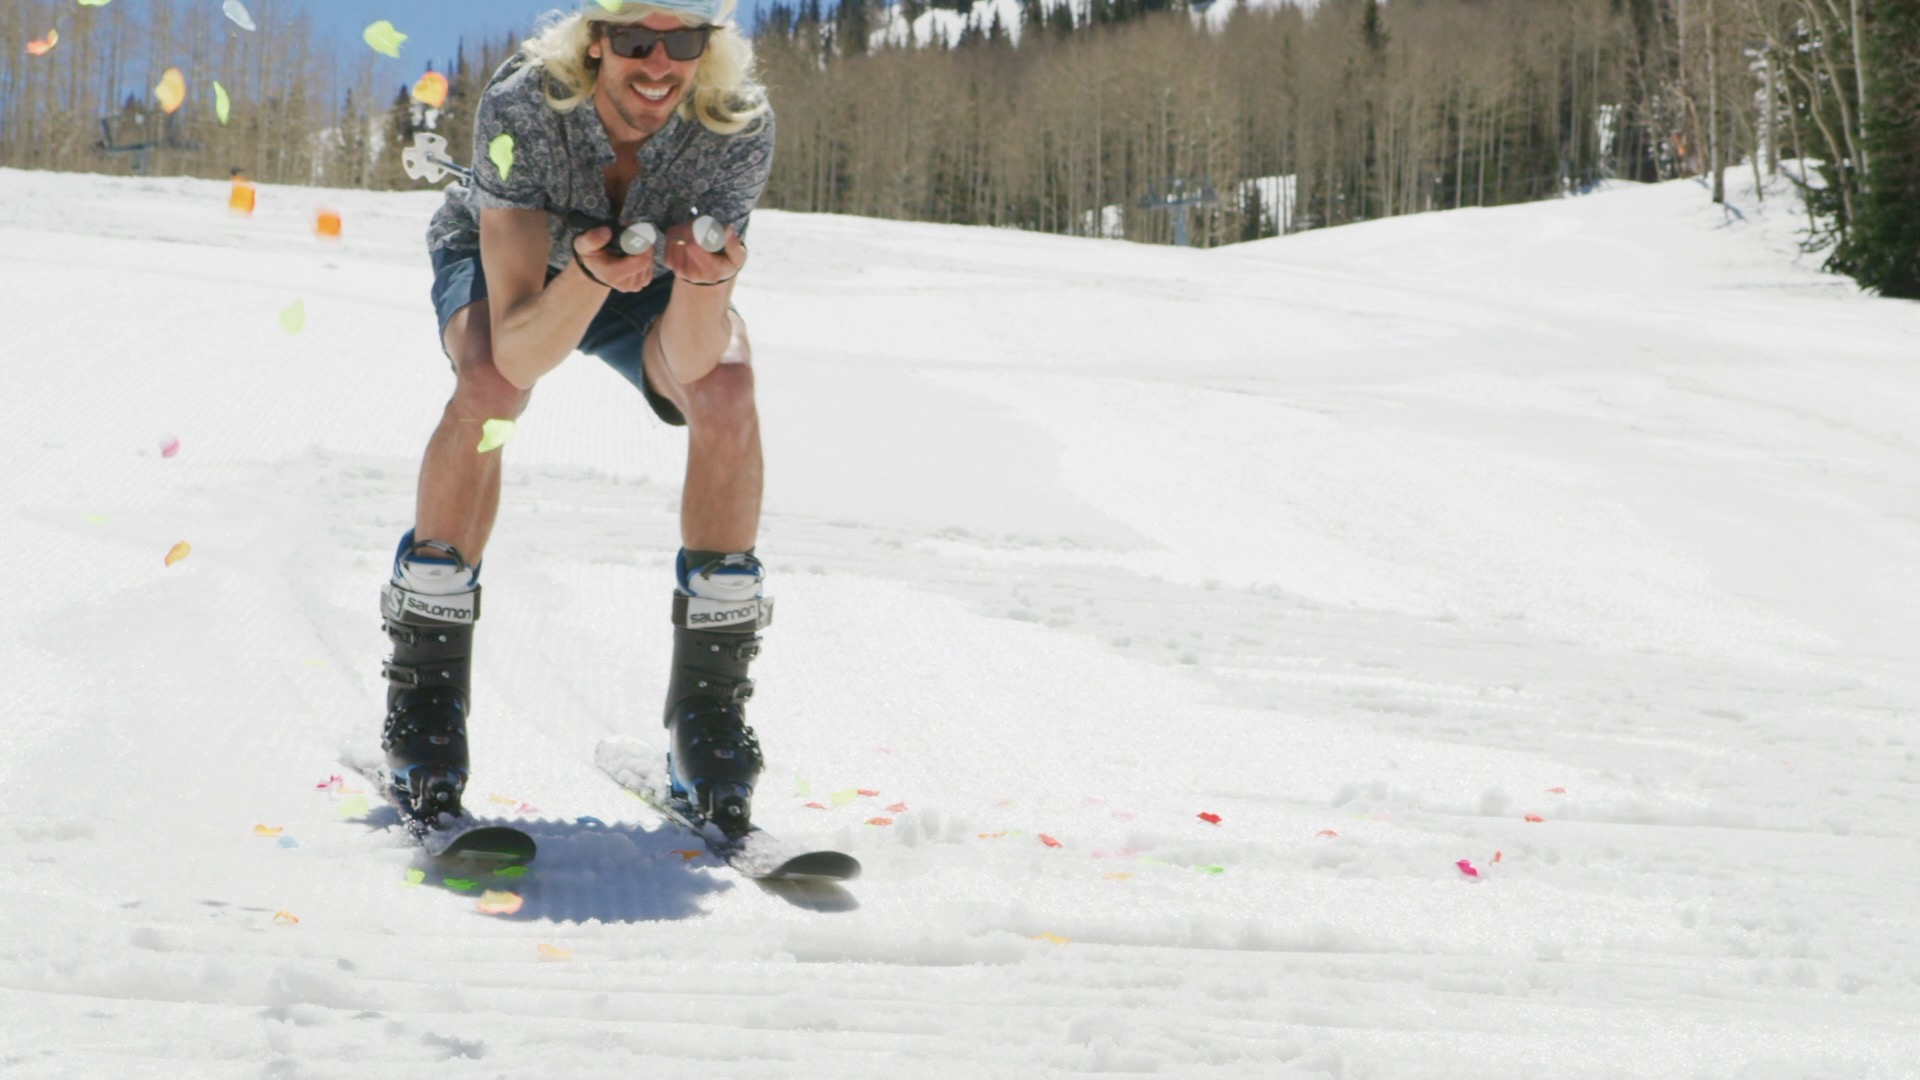 Plant-based wax makes skiers smile!